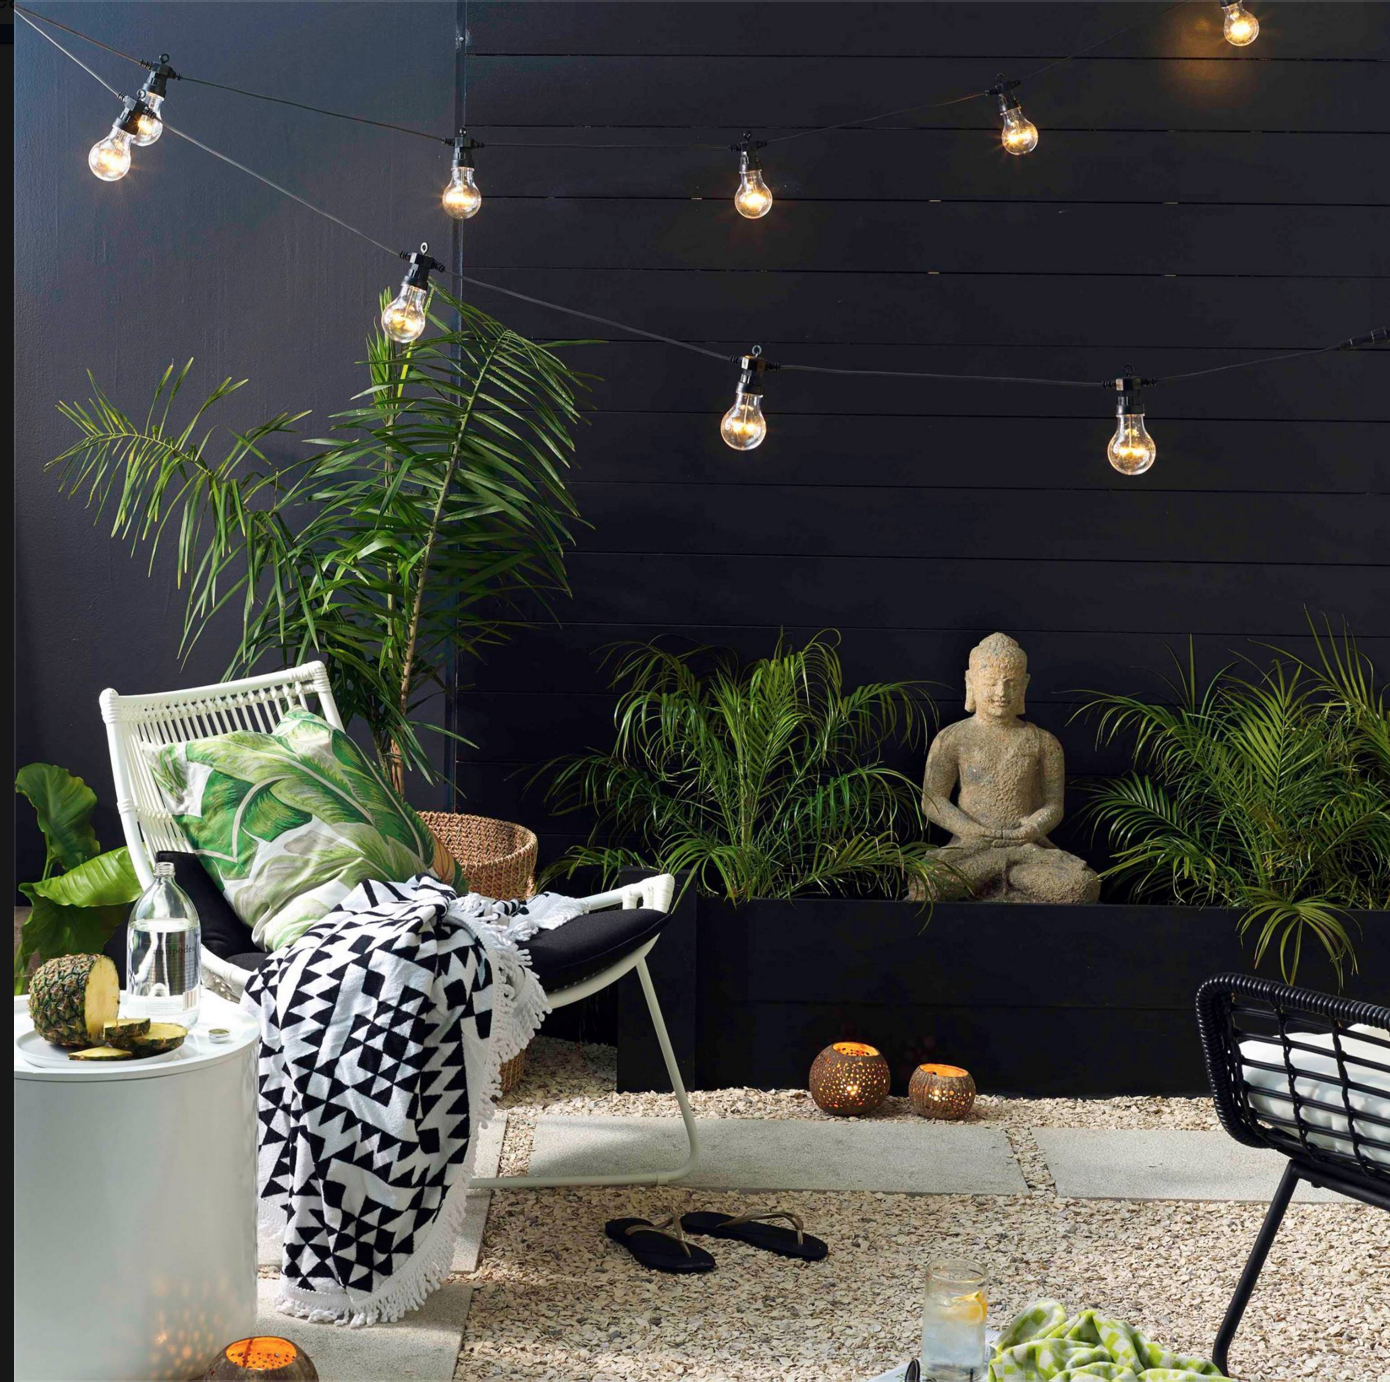 Indoor Garden And Lighting Pin by manuella pinna on exterieur pinterest breezeway walls look at black wall on cottage side indoor plants and festoon lights in breezeway workwithnaturefo